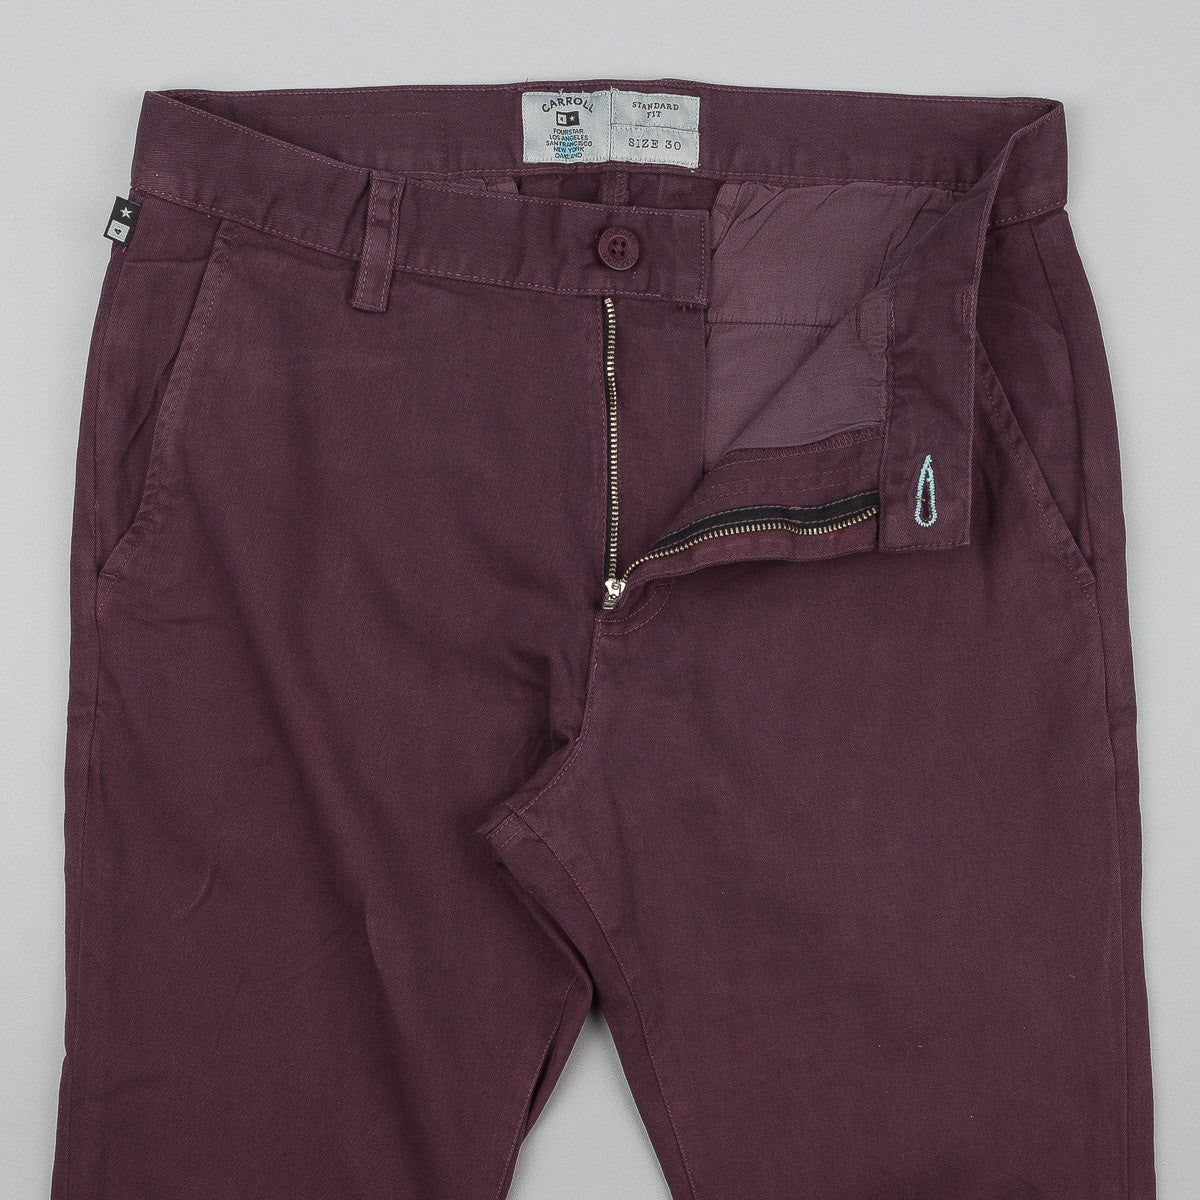 Fourstar Carroll Chino Trousers - Merlot